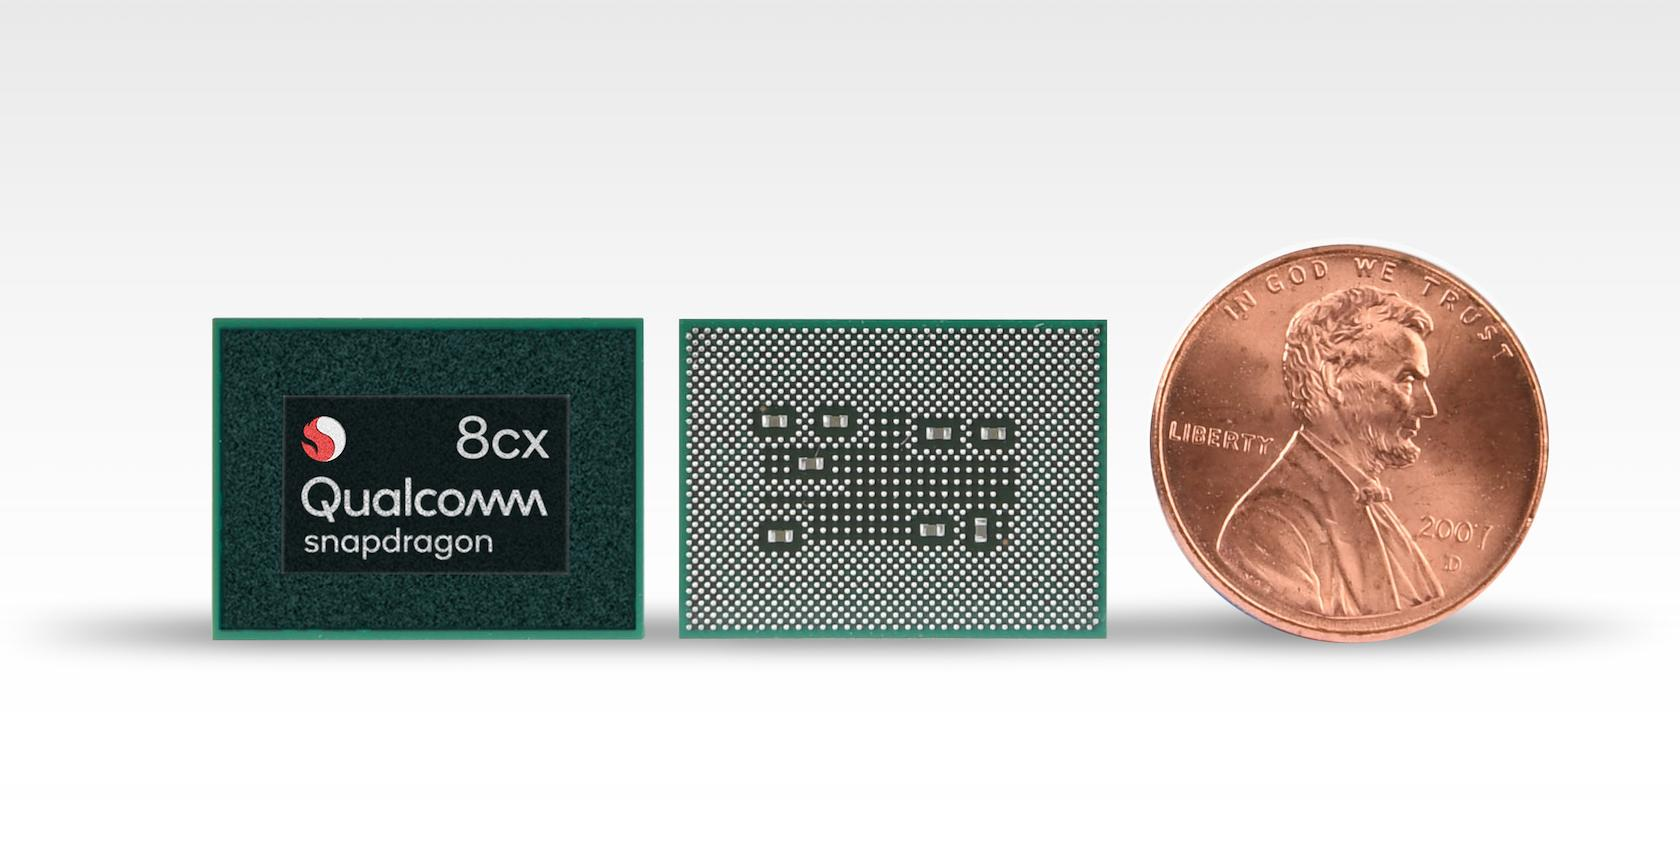 Qualcomm's Snapdragon 8cx Gen 3 will compete with Apple M1